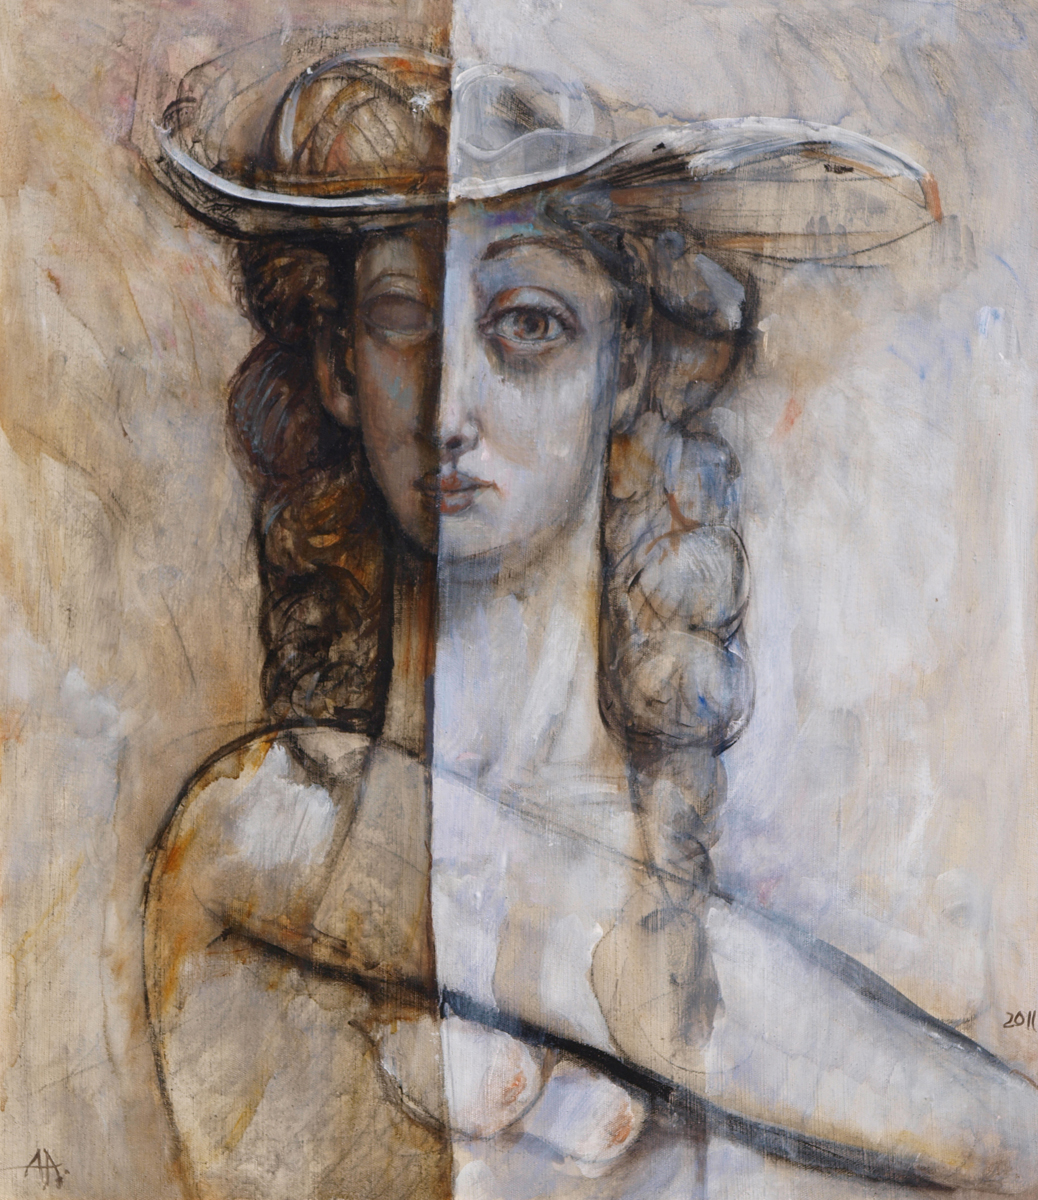 Girl with hat artwork by Anton Antonov - art listed for sale on Artplode